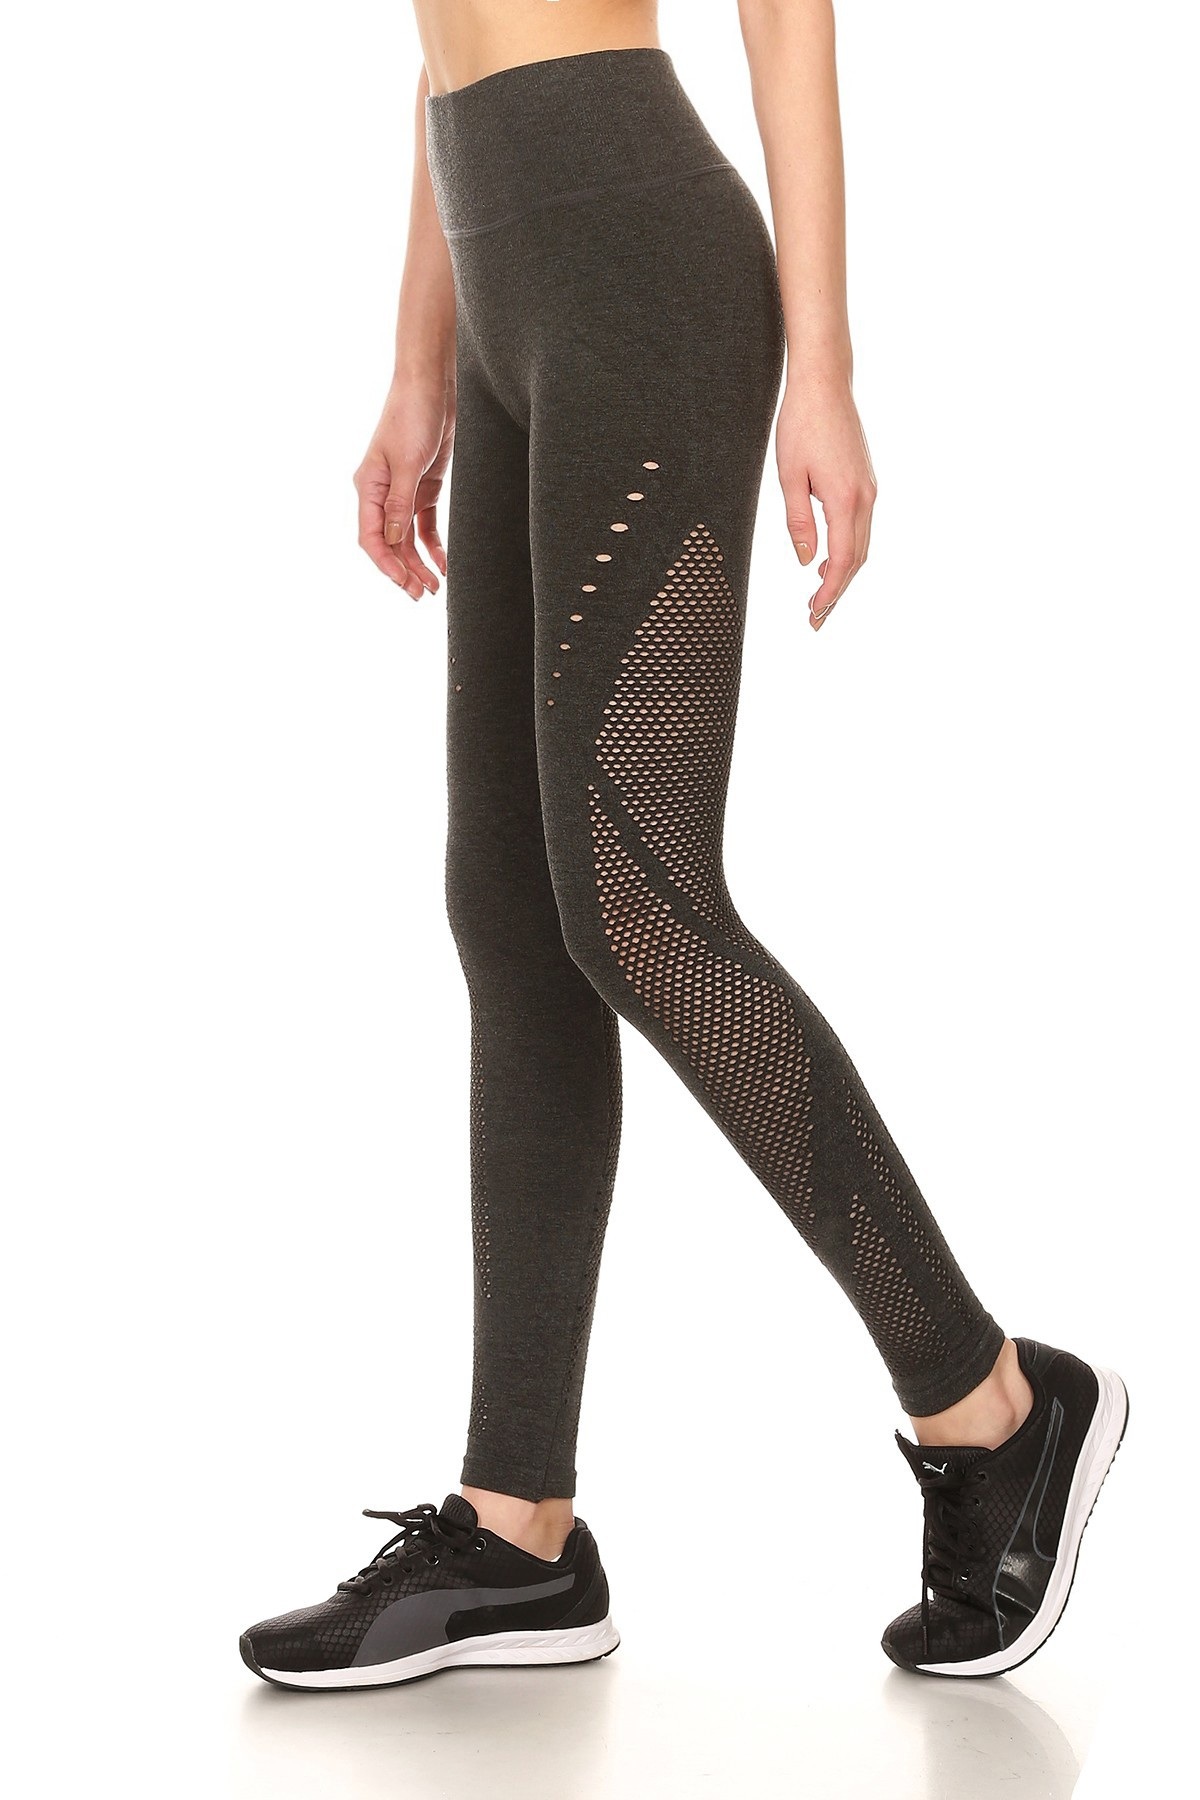 HEATHER CHARCOAL SEAMLESS HIGH WAIST LEGGING W/ FISH NET PANELS#8L16